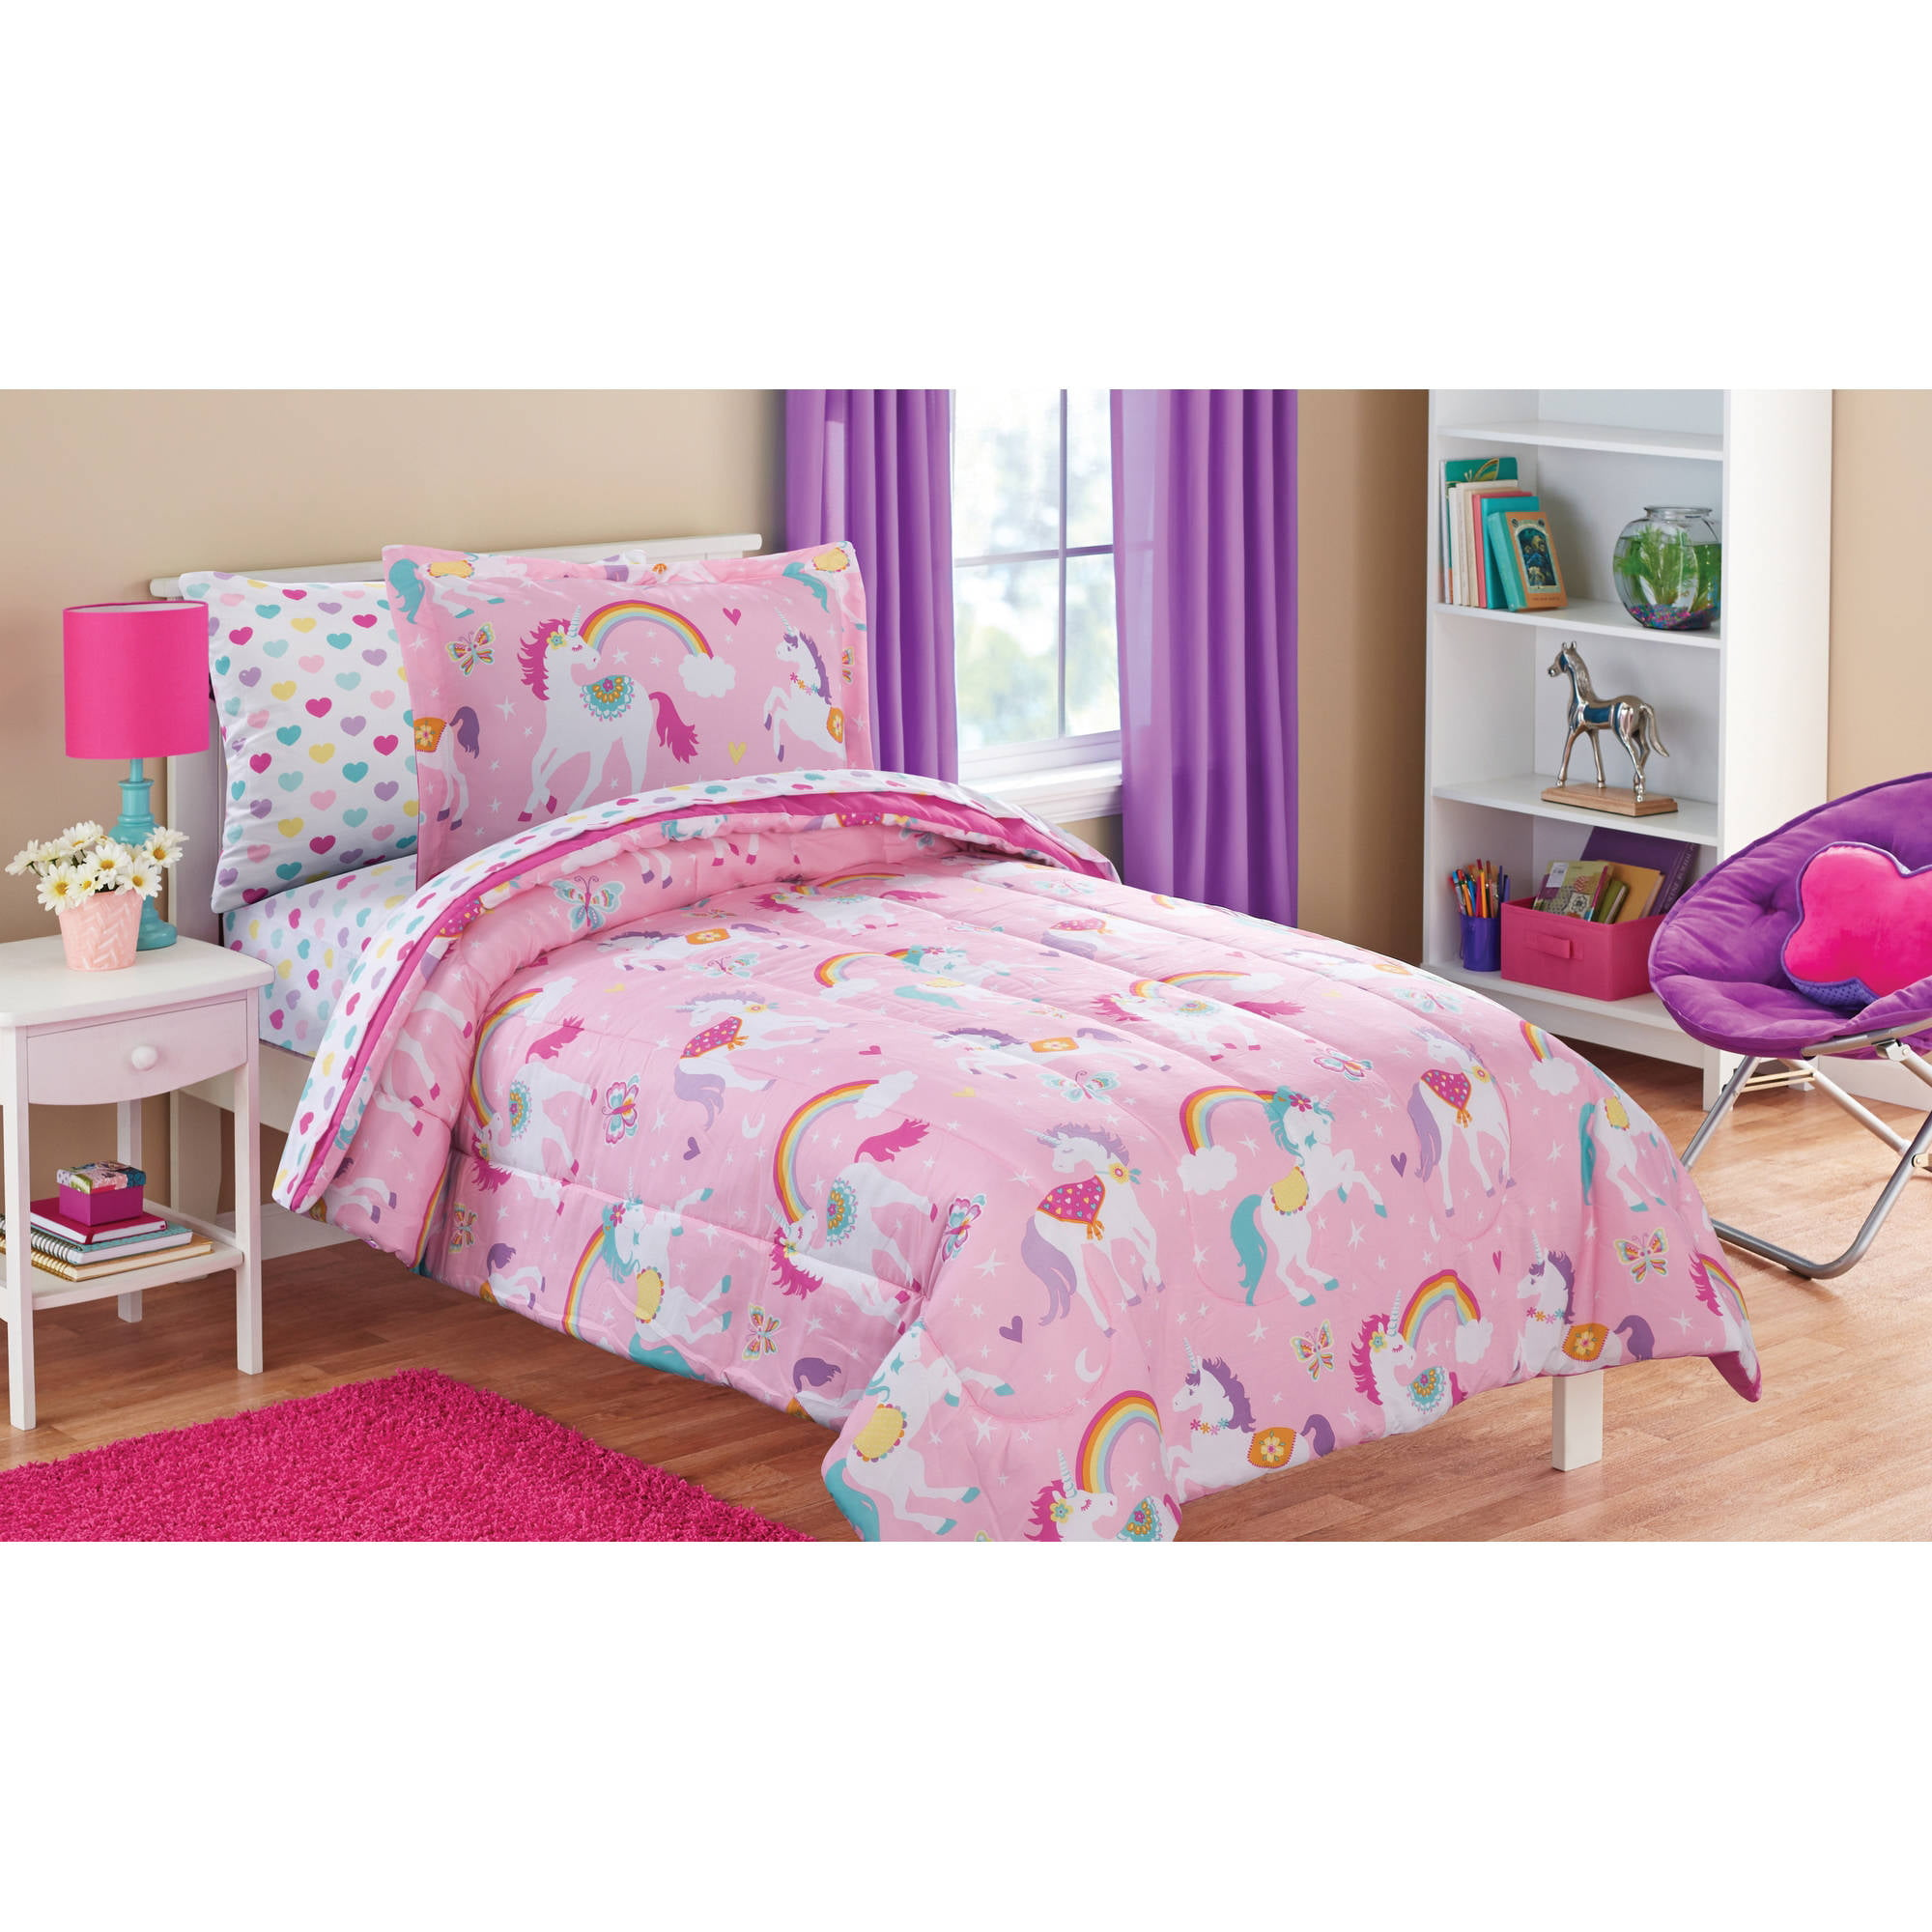 mainstays kids rainbow unicorn bed in a bag complete bedding set ebay. Black Bedroom Furniture Sets. Home Design Ideas